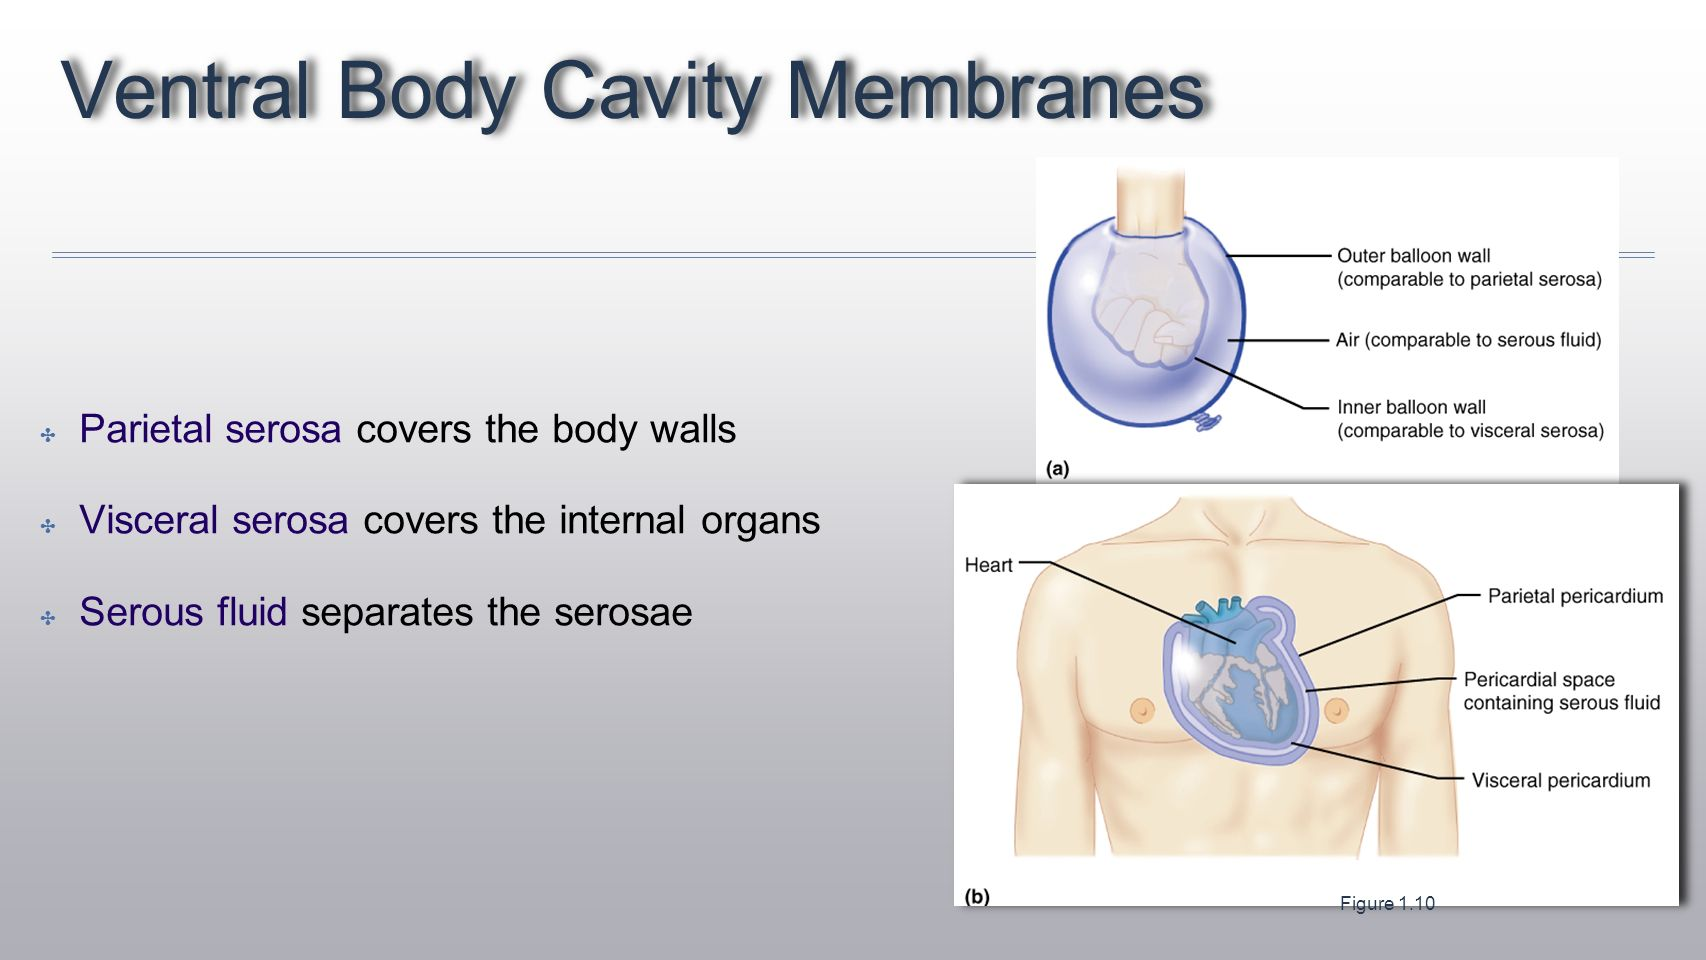 hight resolution of ventral body cavity membranes